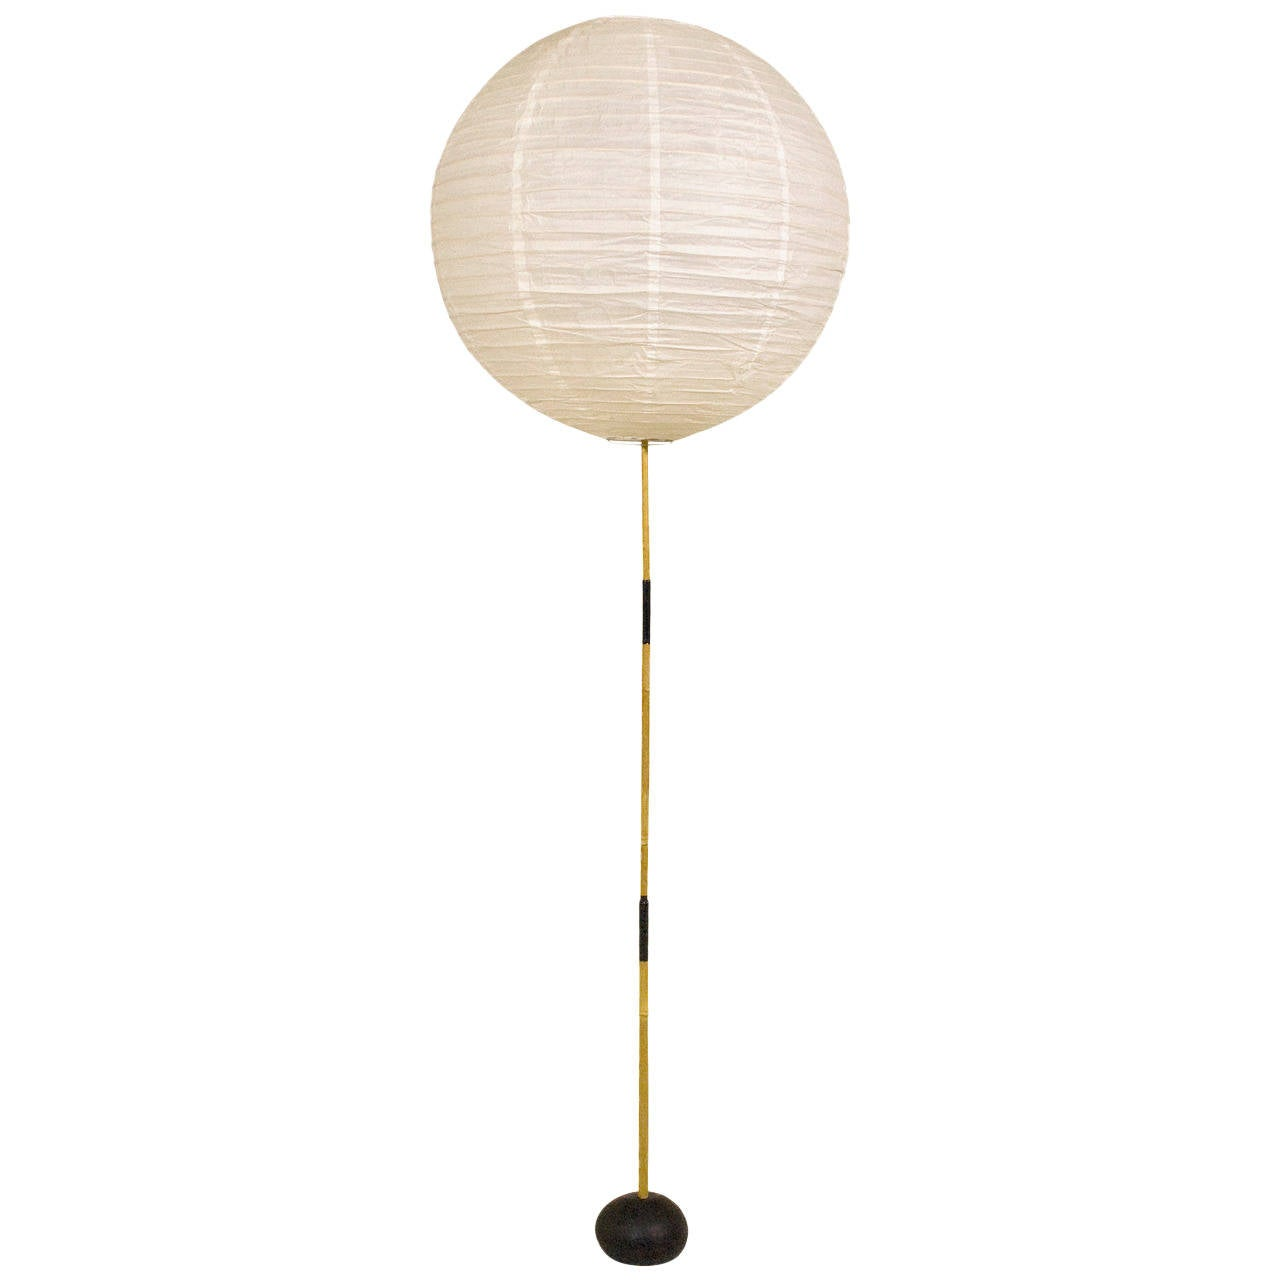 Isamu Noguchi Bamboo Floor Lamp, circa 1950 Japan at 1stdibs